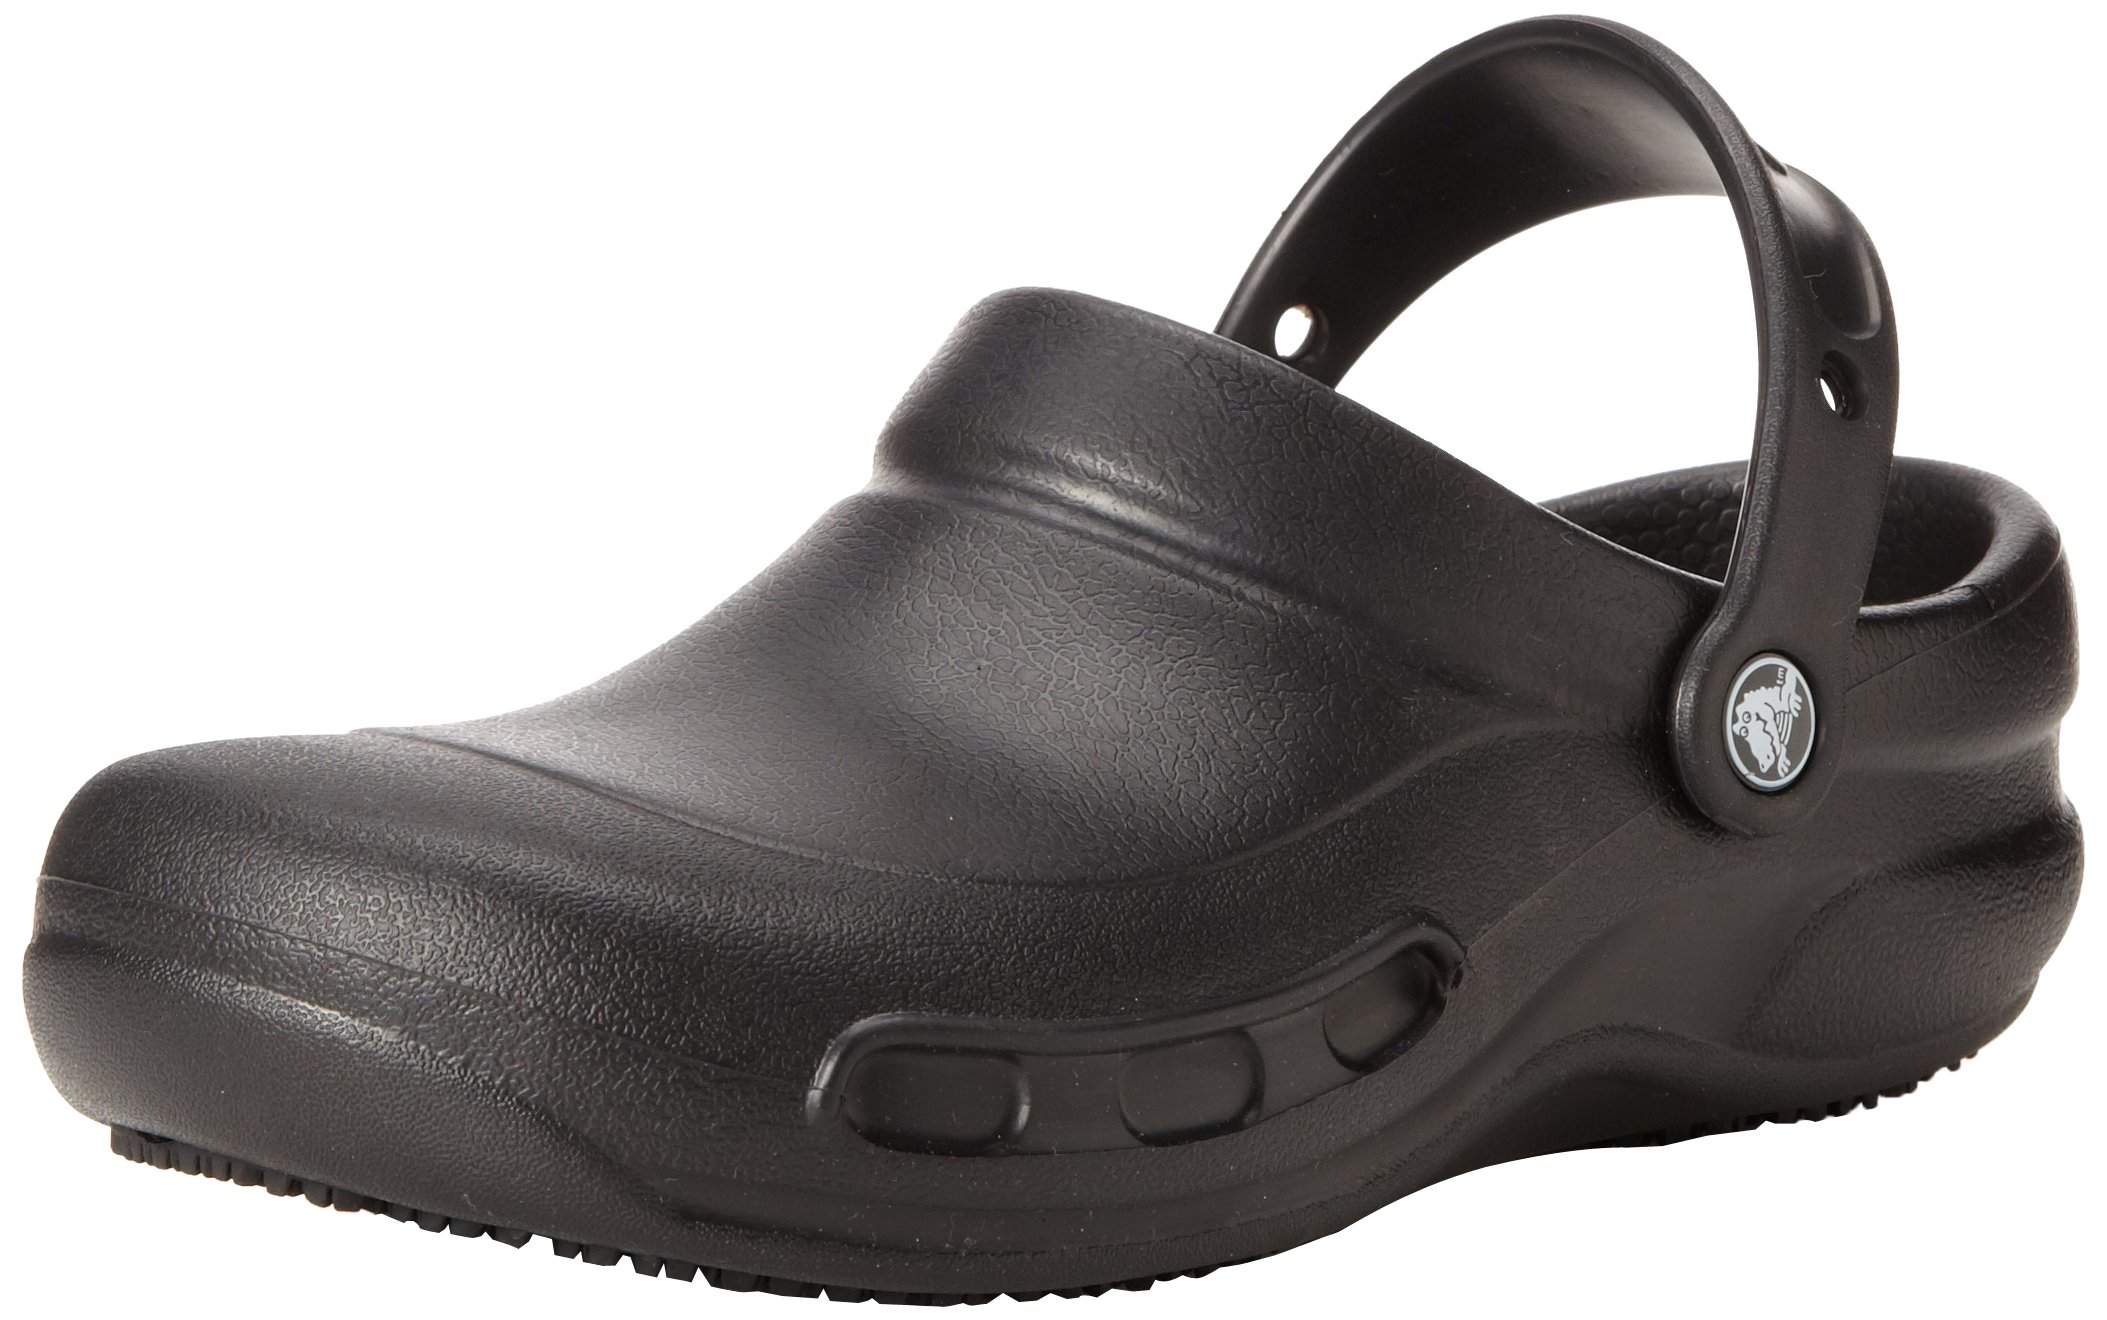 Crocs Unisex Bistro Work Clog,  Black, 10 US Men's / 12 US Women's